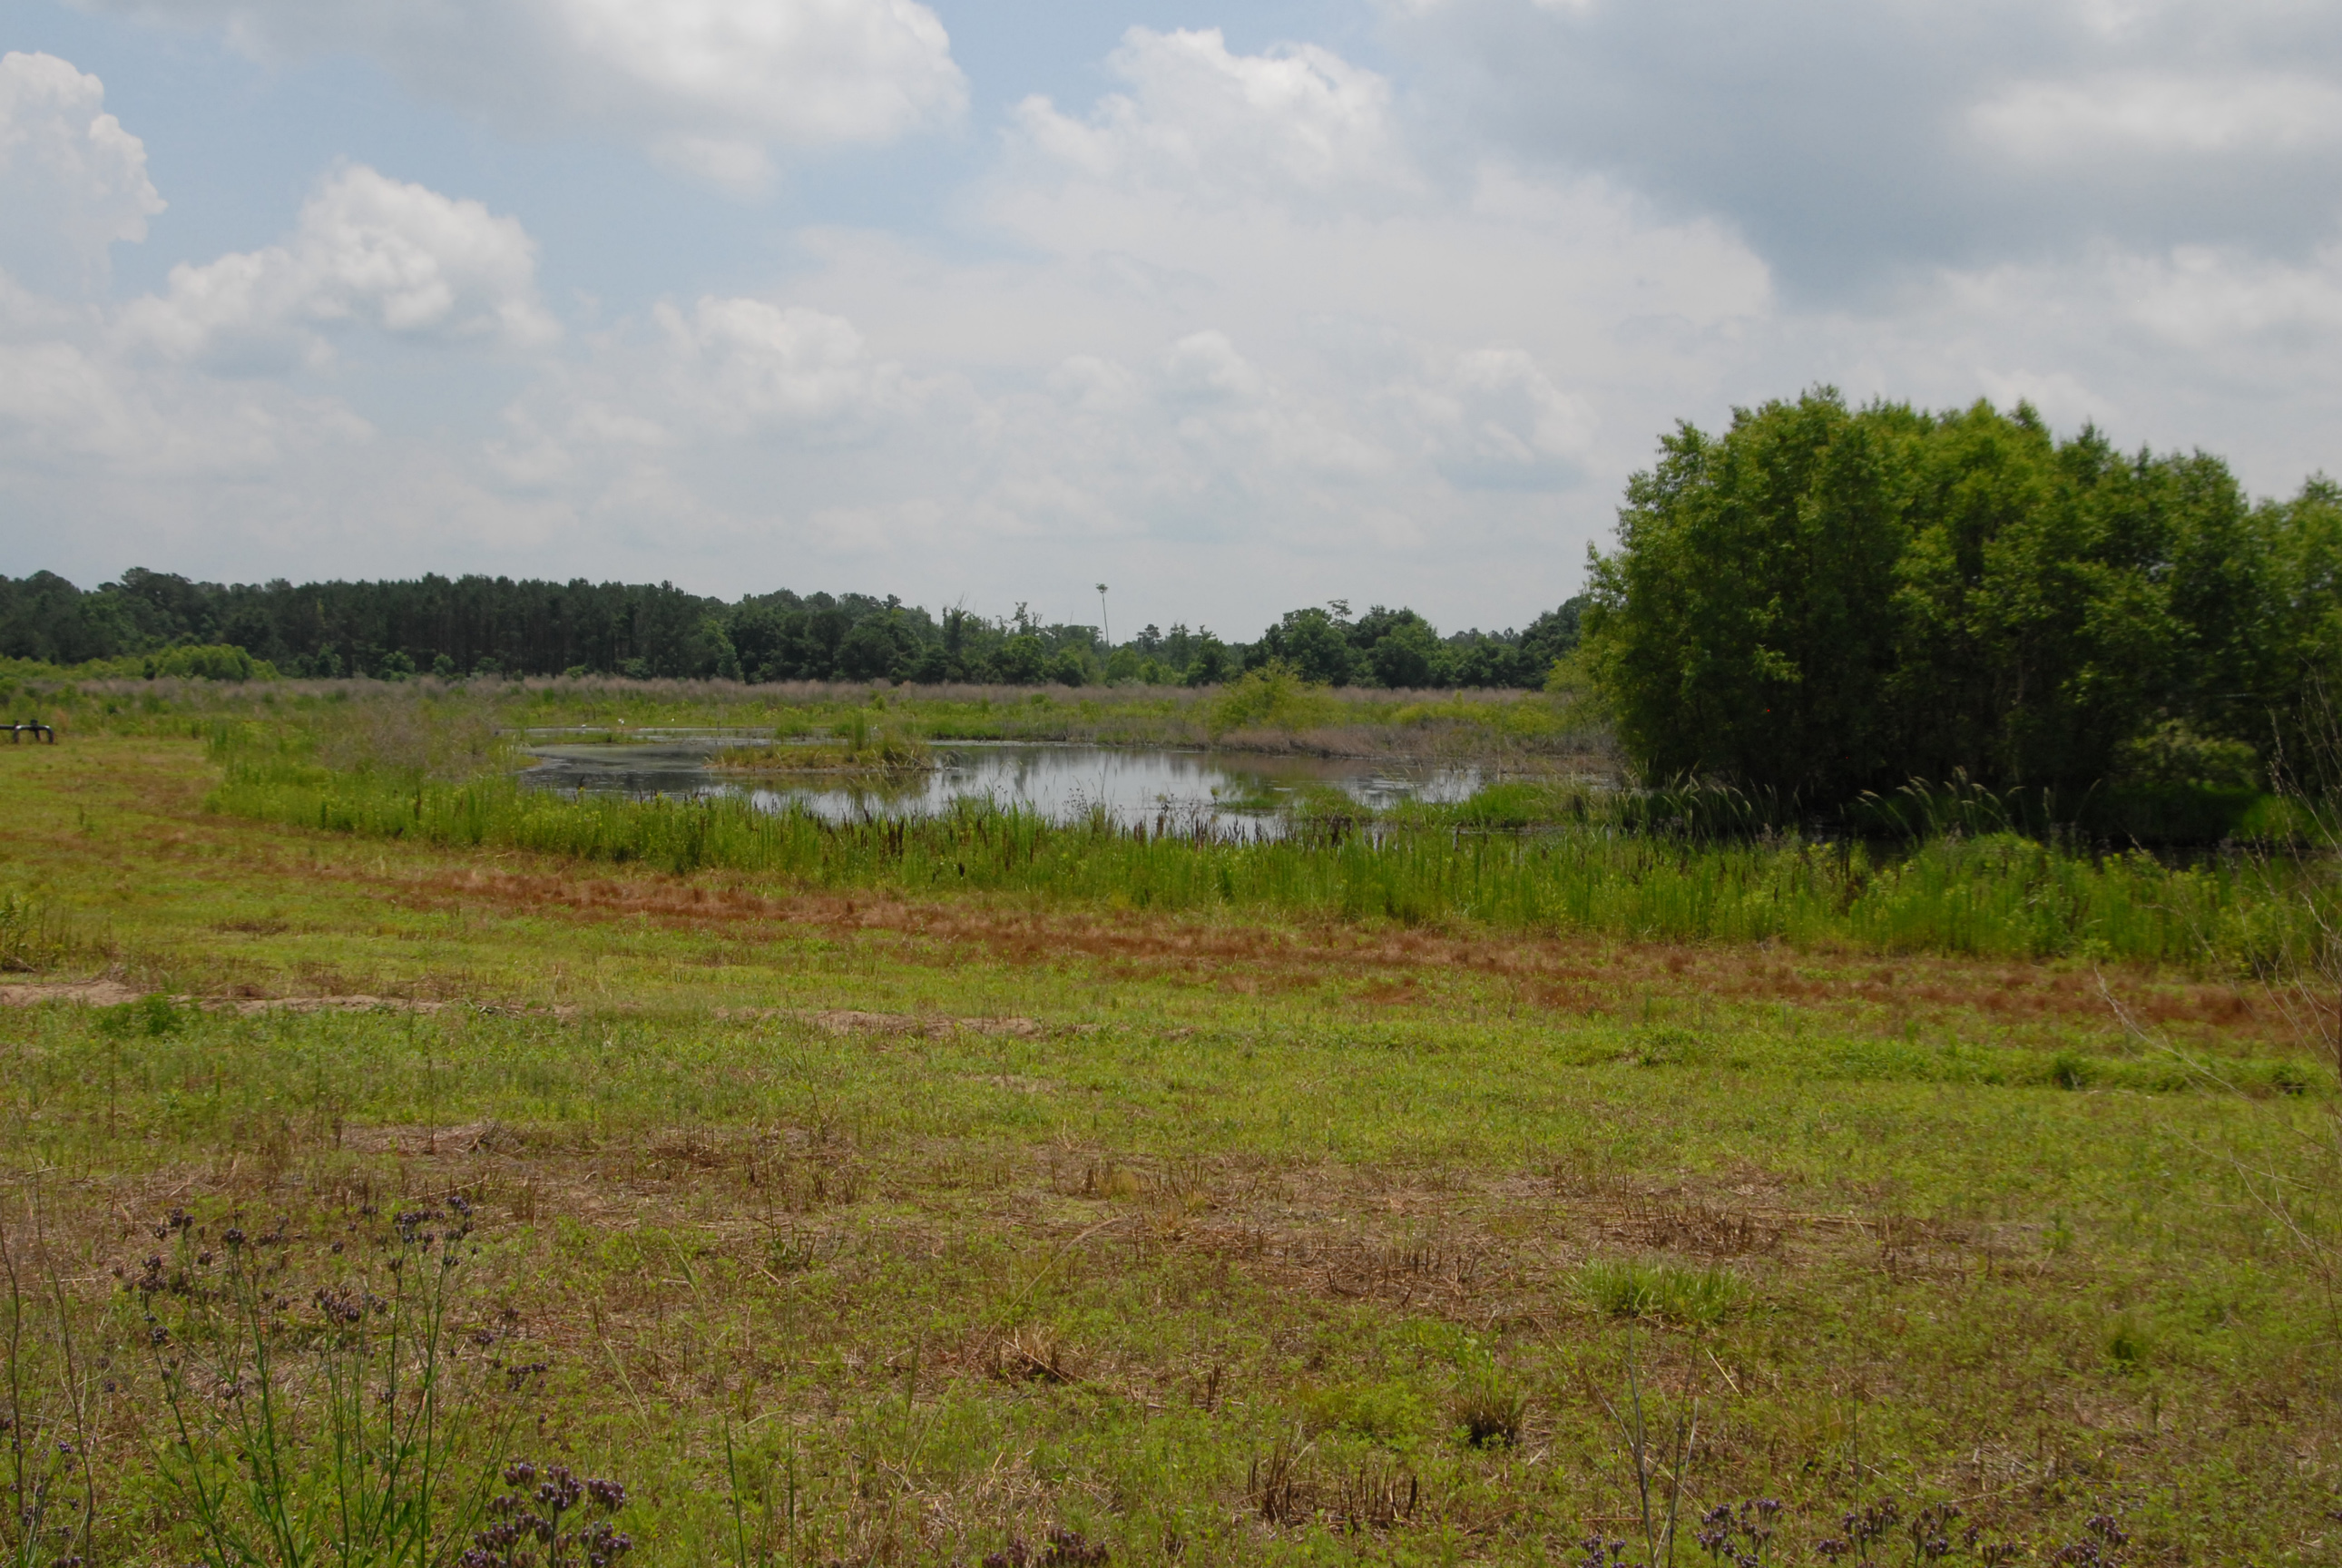 Image of a wetland area in southwest Georgia